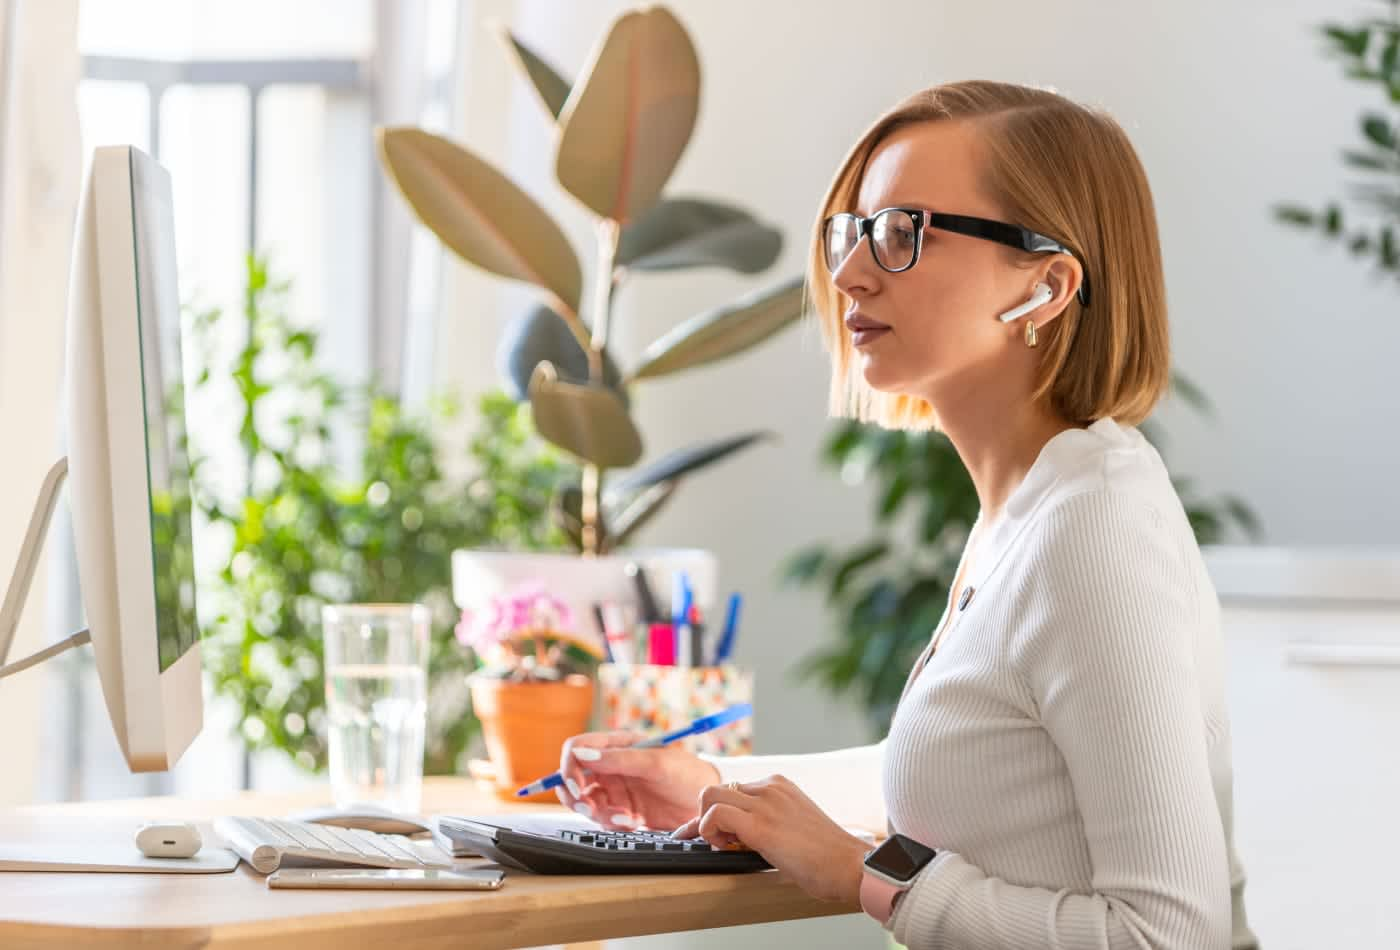 45% of women business leaders say it's difficult for women to speak up in virtual meetings